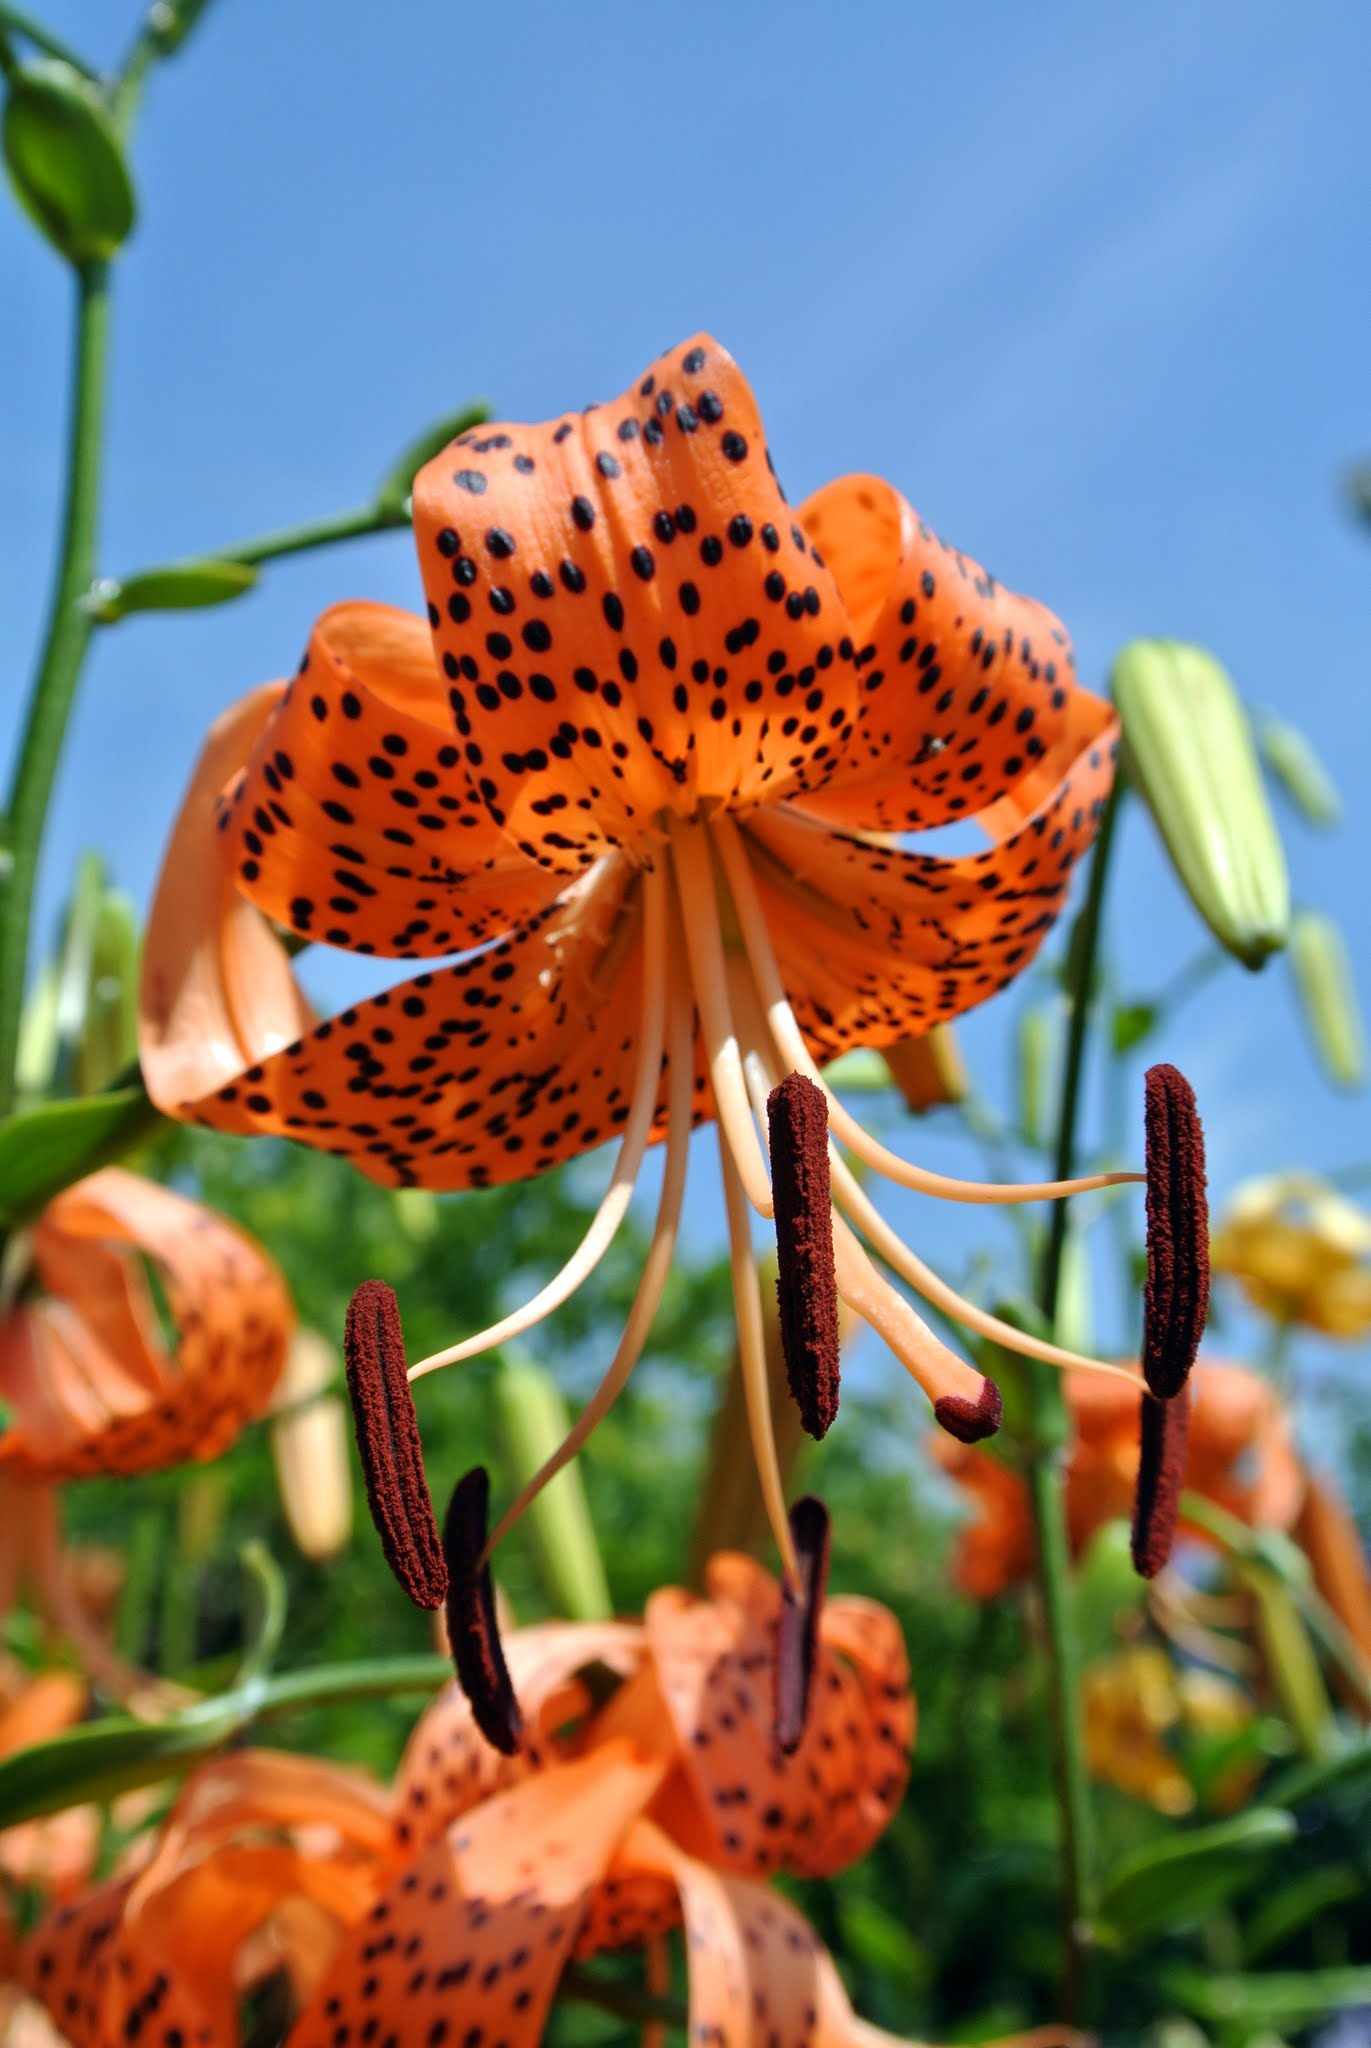 The Martha Stewart Blog Blog Archive Blooming Tiger Lilies